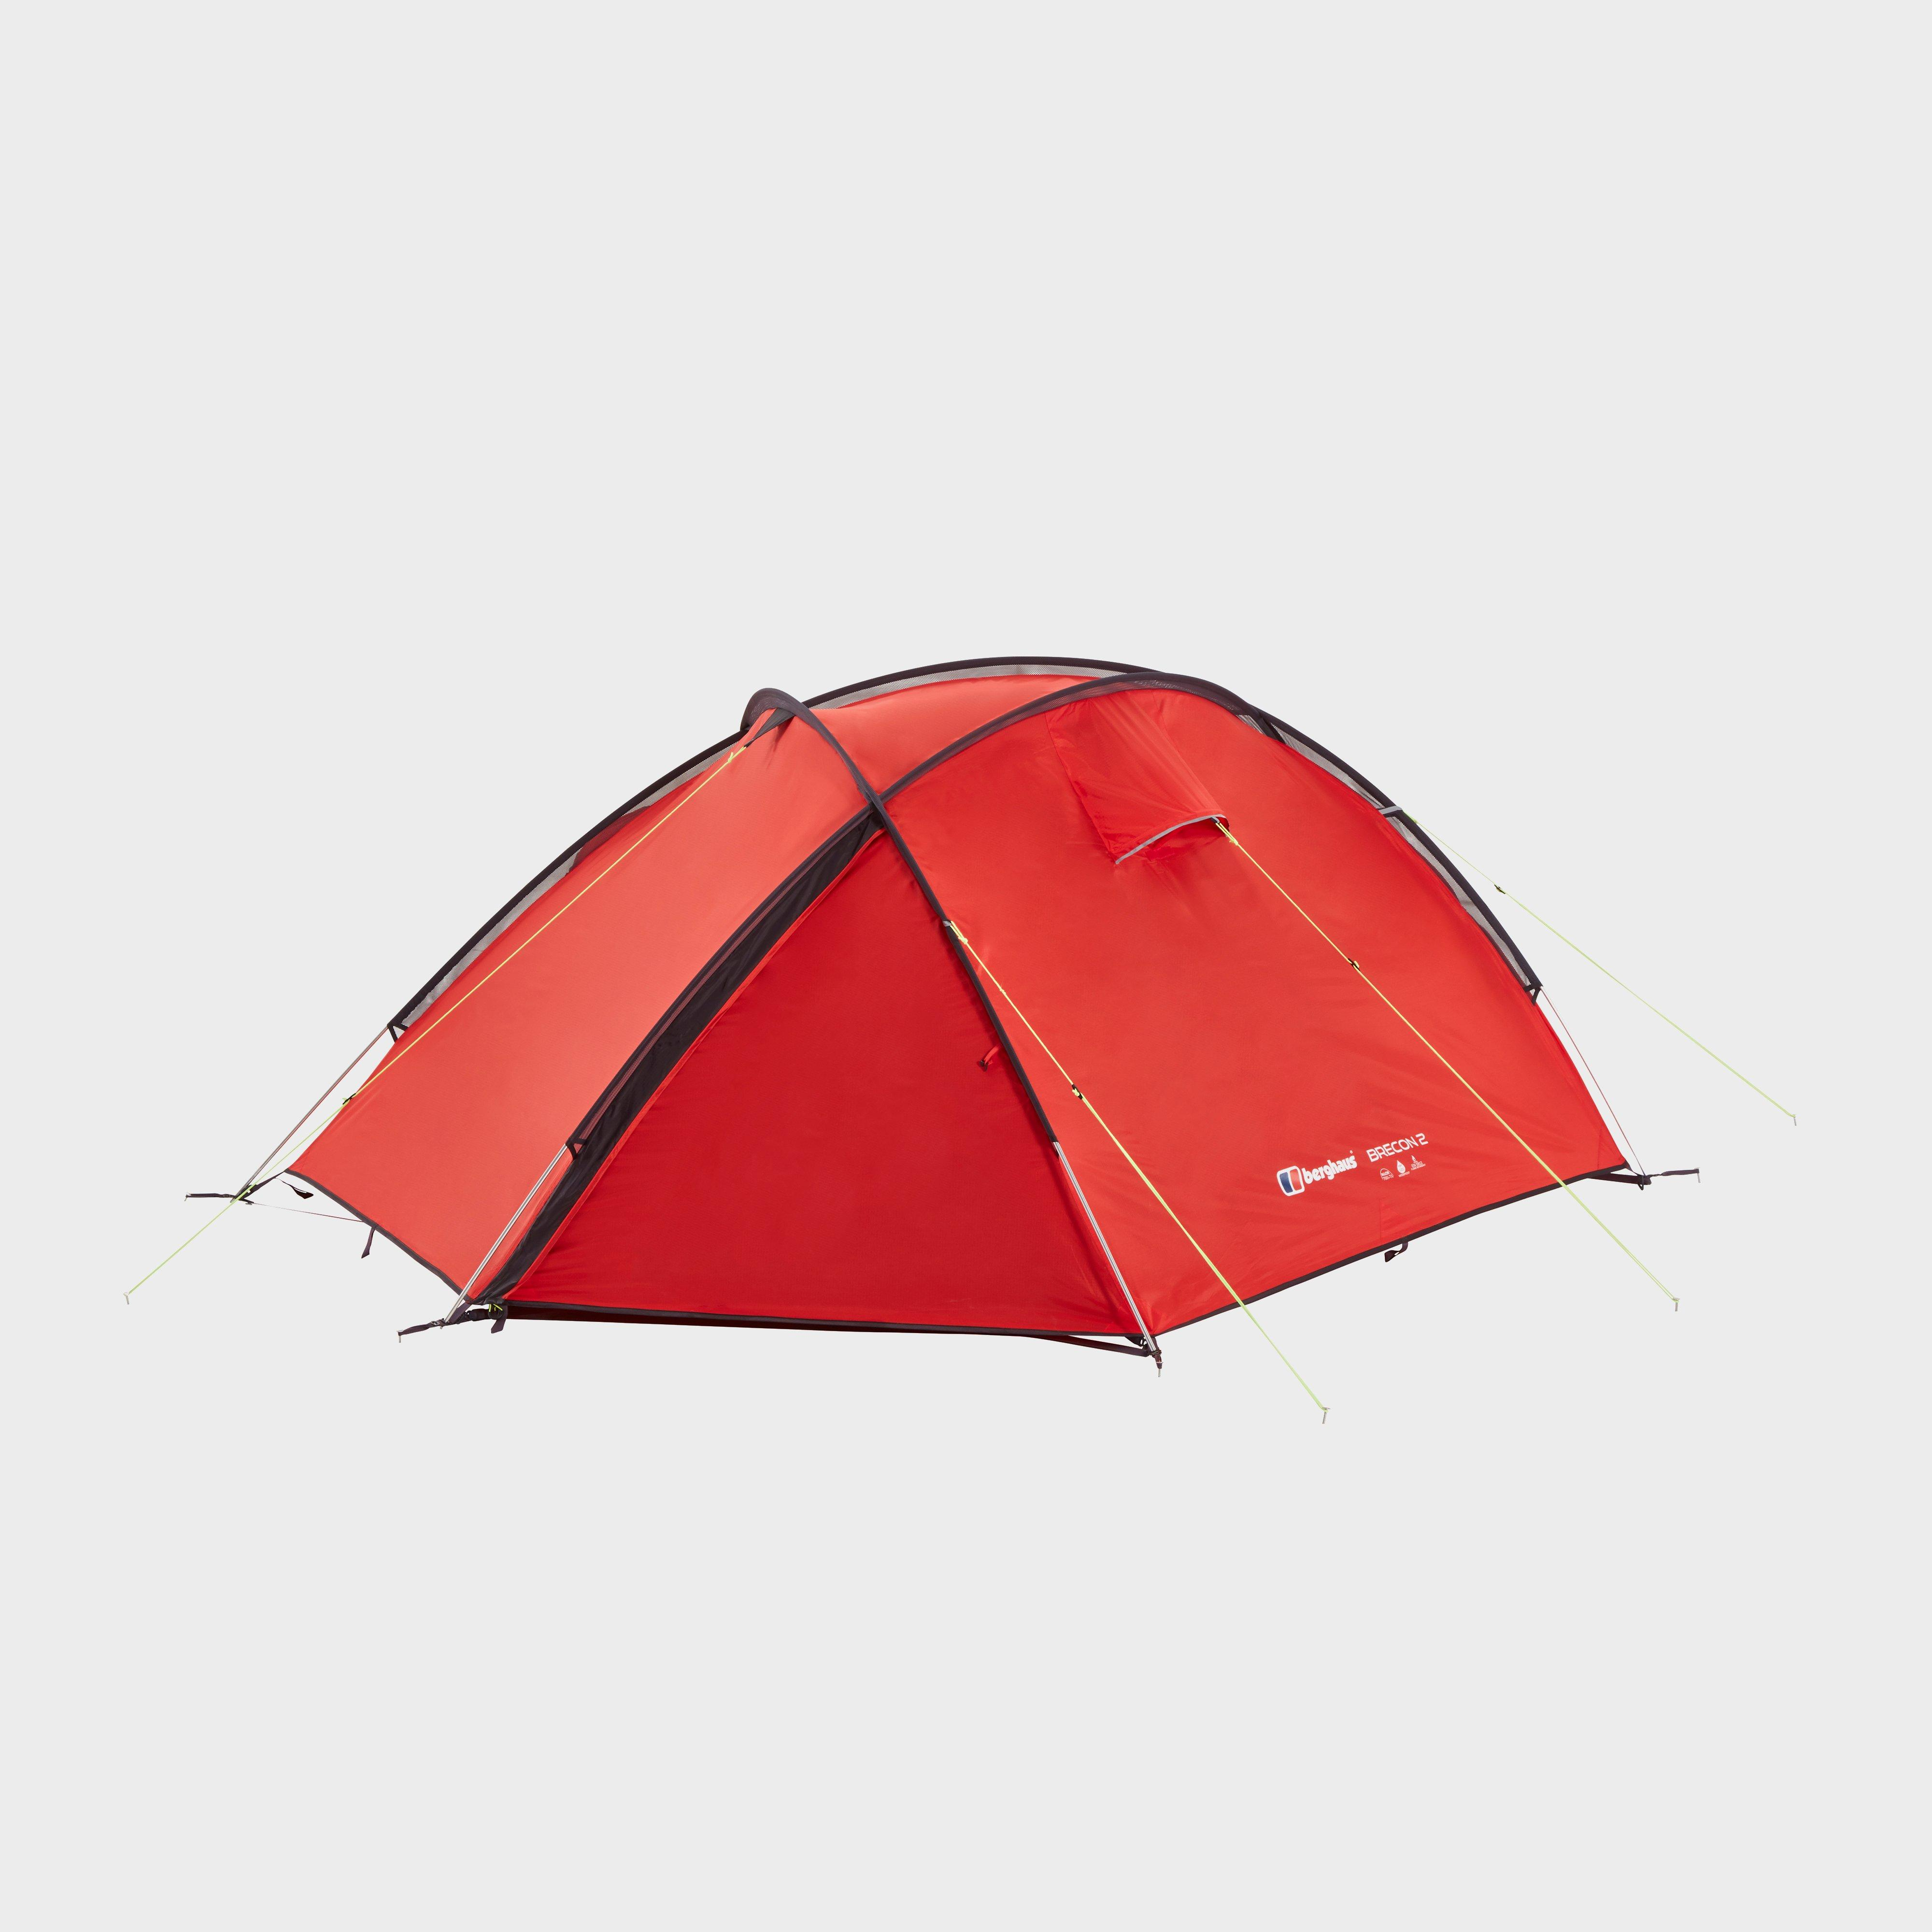 Berghaus Brecon 2 Tent, Red